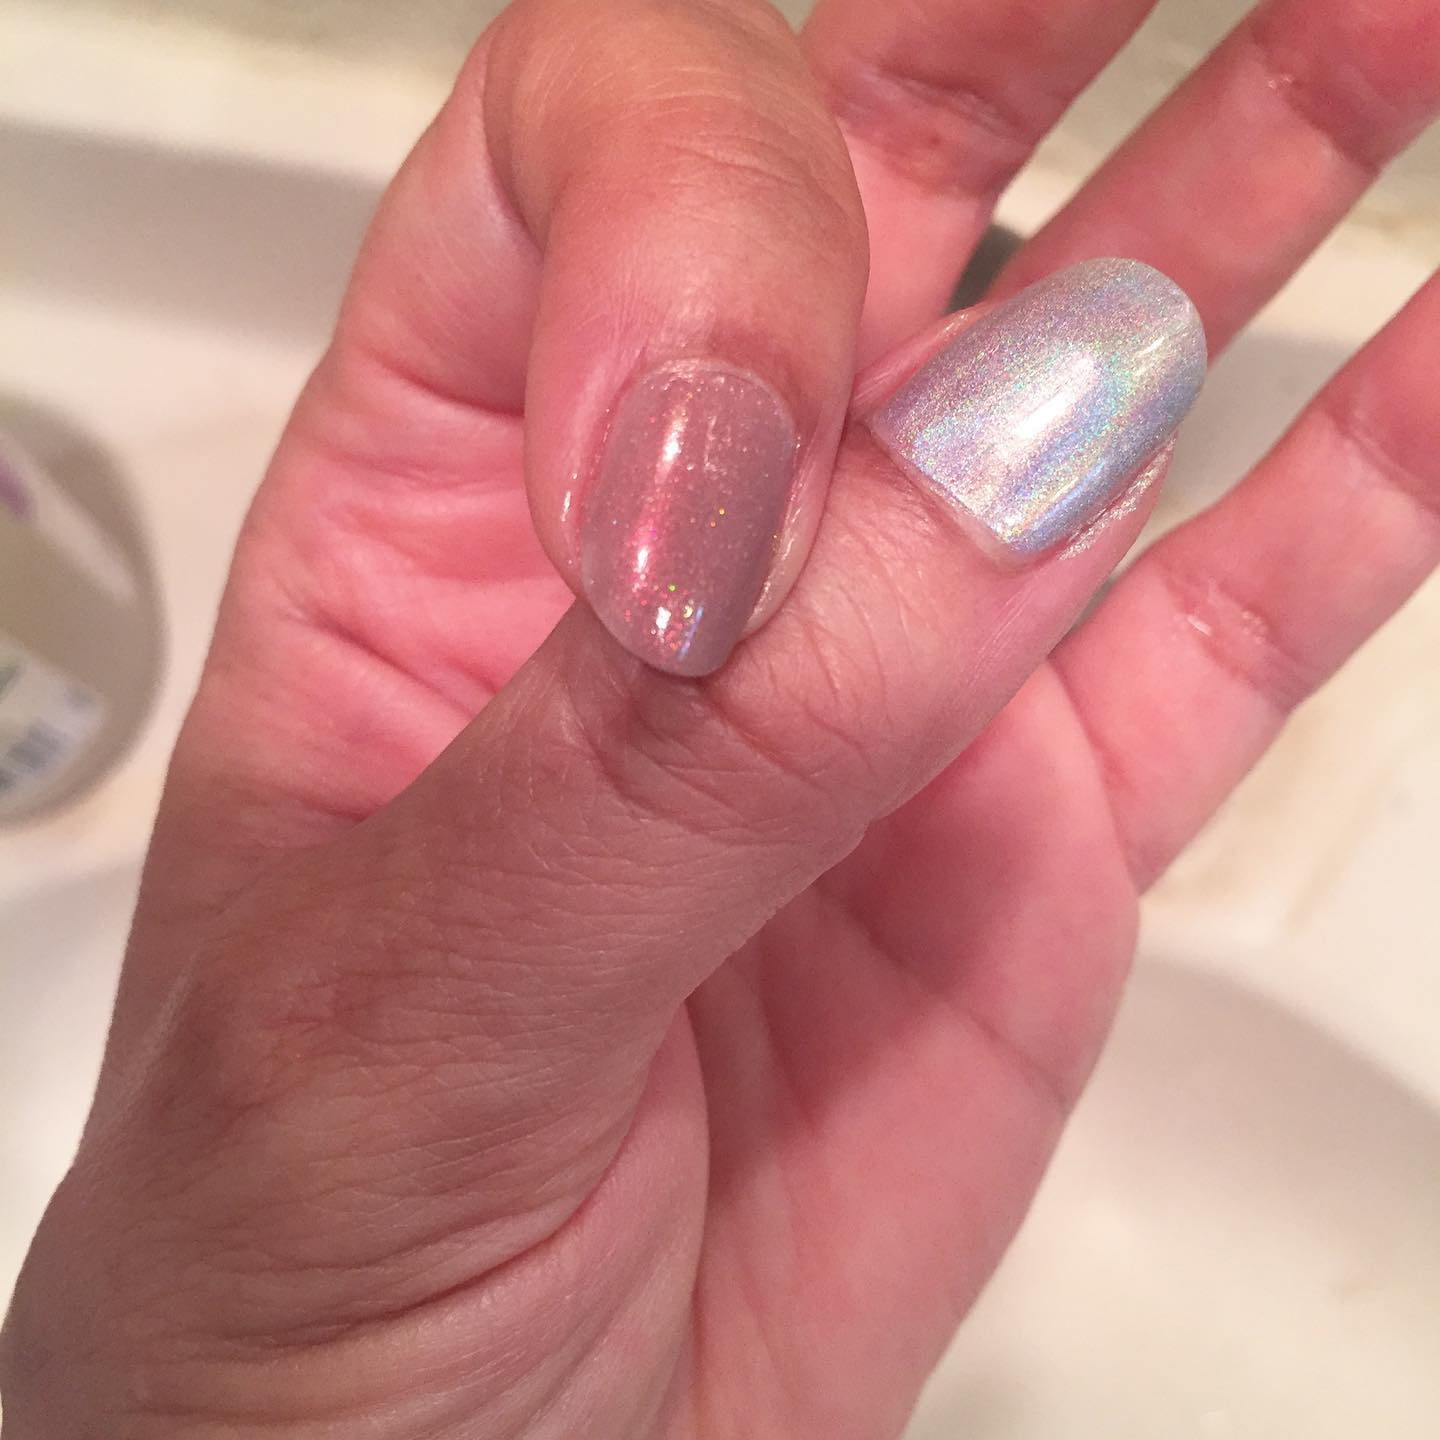 Trying to decide which shiny color to use. The one on my thumb or the one on my index finger? Help. 😀#ichoosebeauty Day 2854